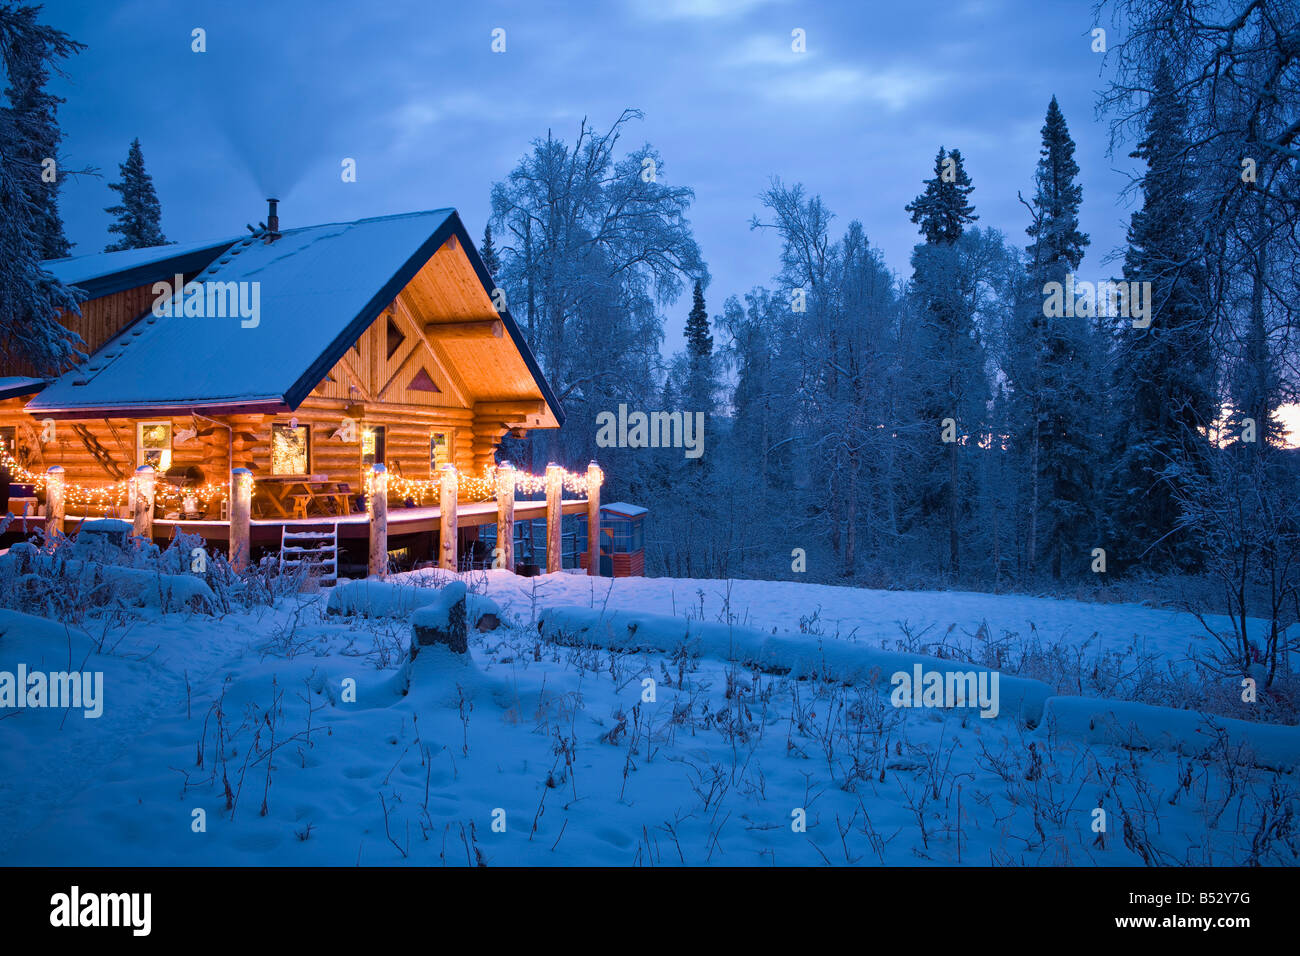 Log Cabin In The Woods Decorated With Christmas Lights At